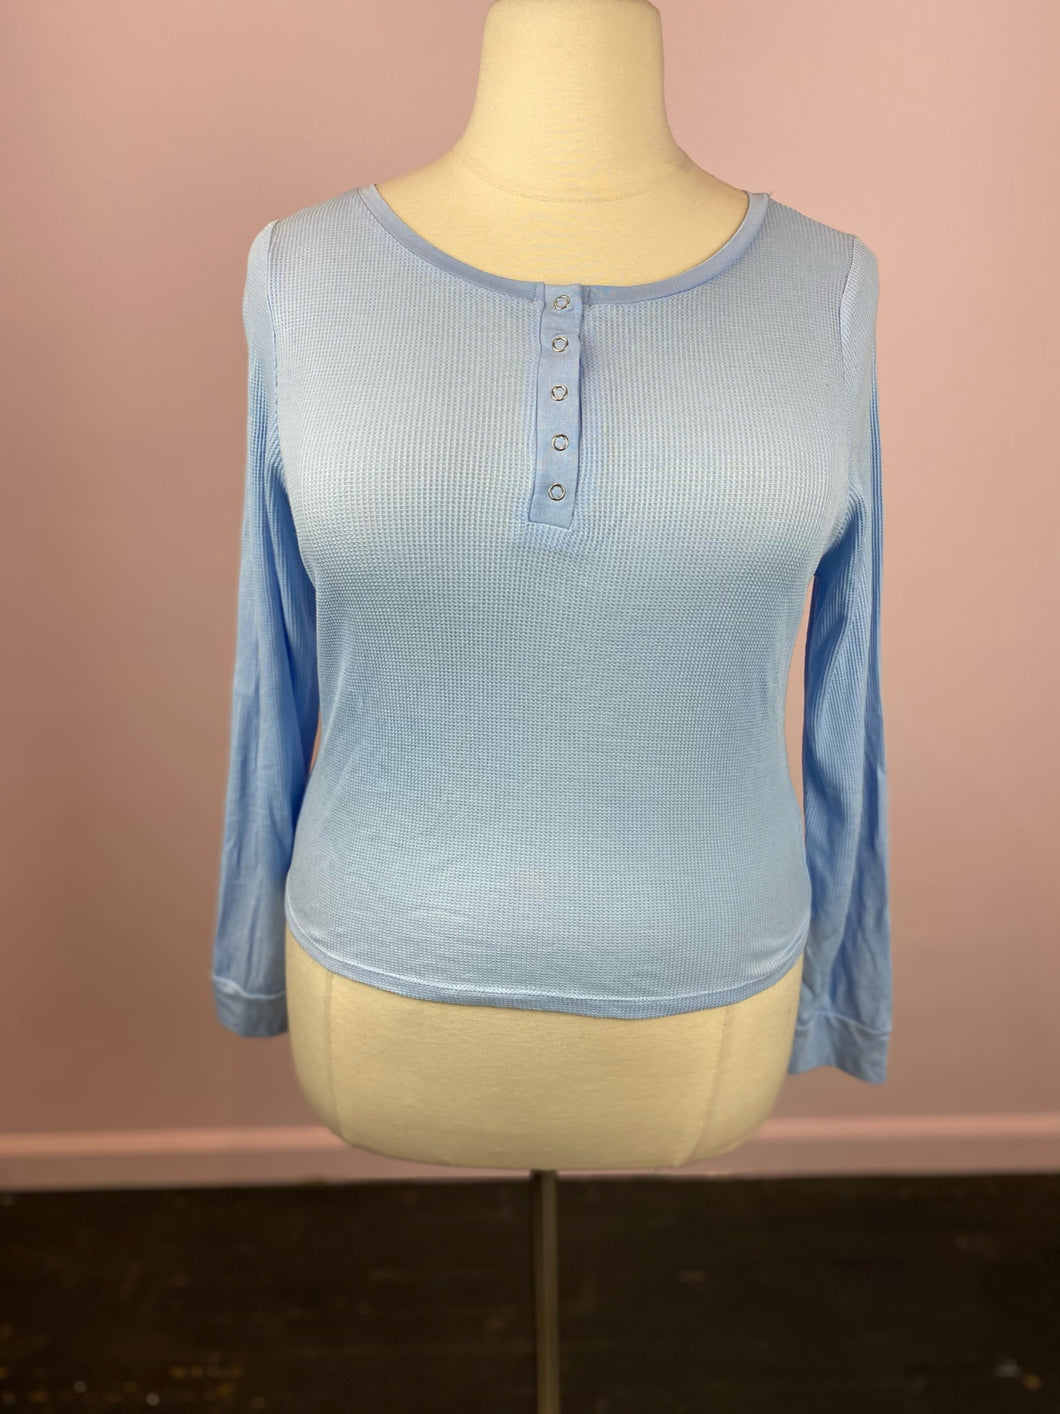 Baby Blue Long Sleeve Thermal Henley Shirt by Fashion Nova, Size 1X